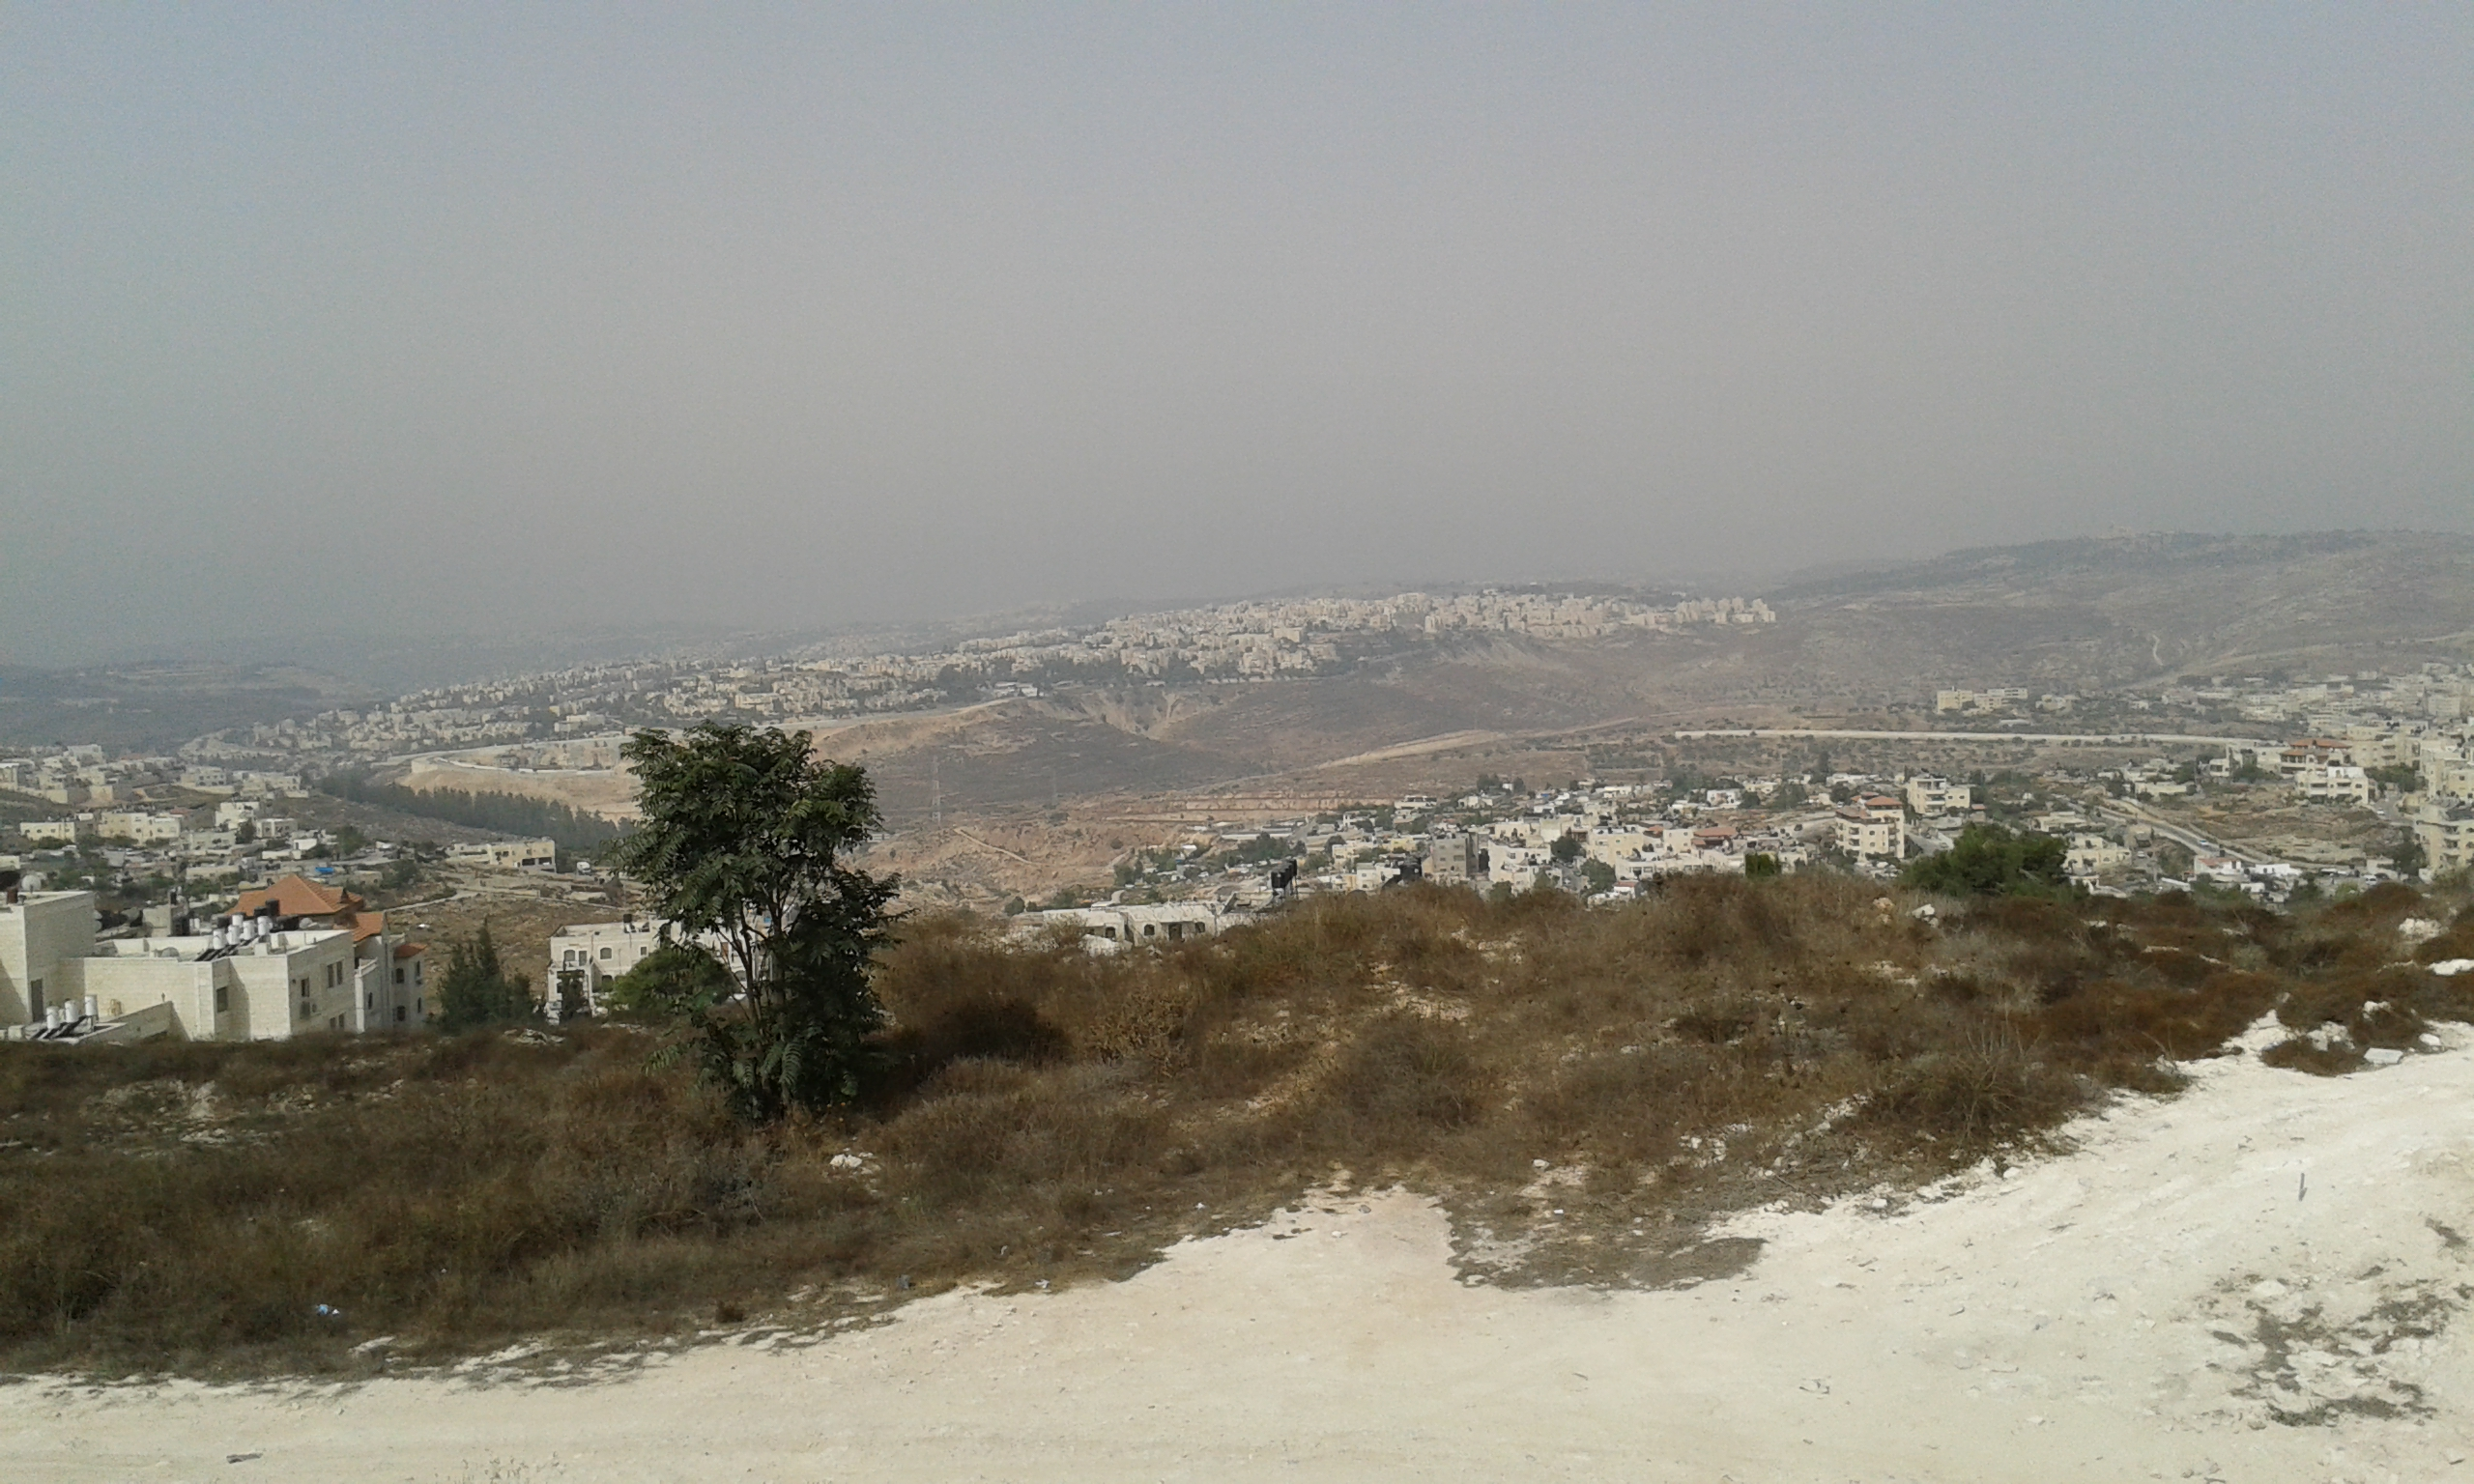 View from The Biblical Givat Shaul